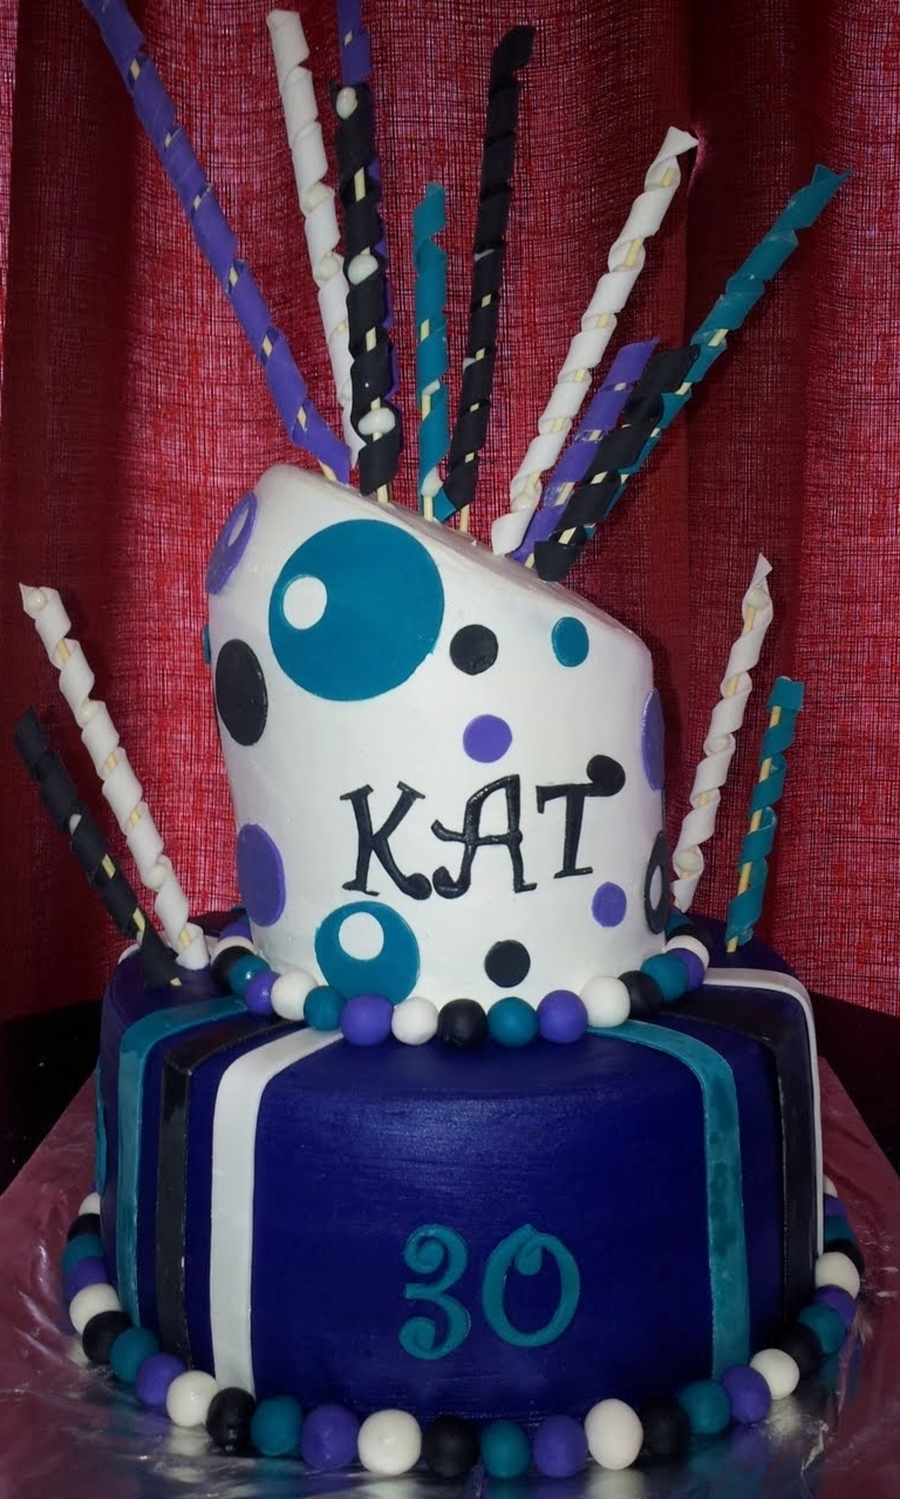 Purple Teal And Black Polka Dot Striped Themed 30th